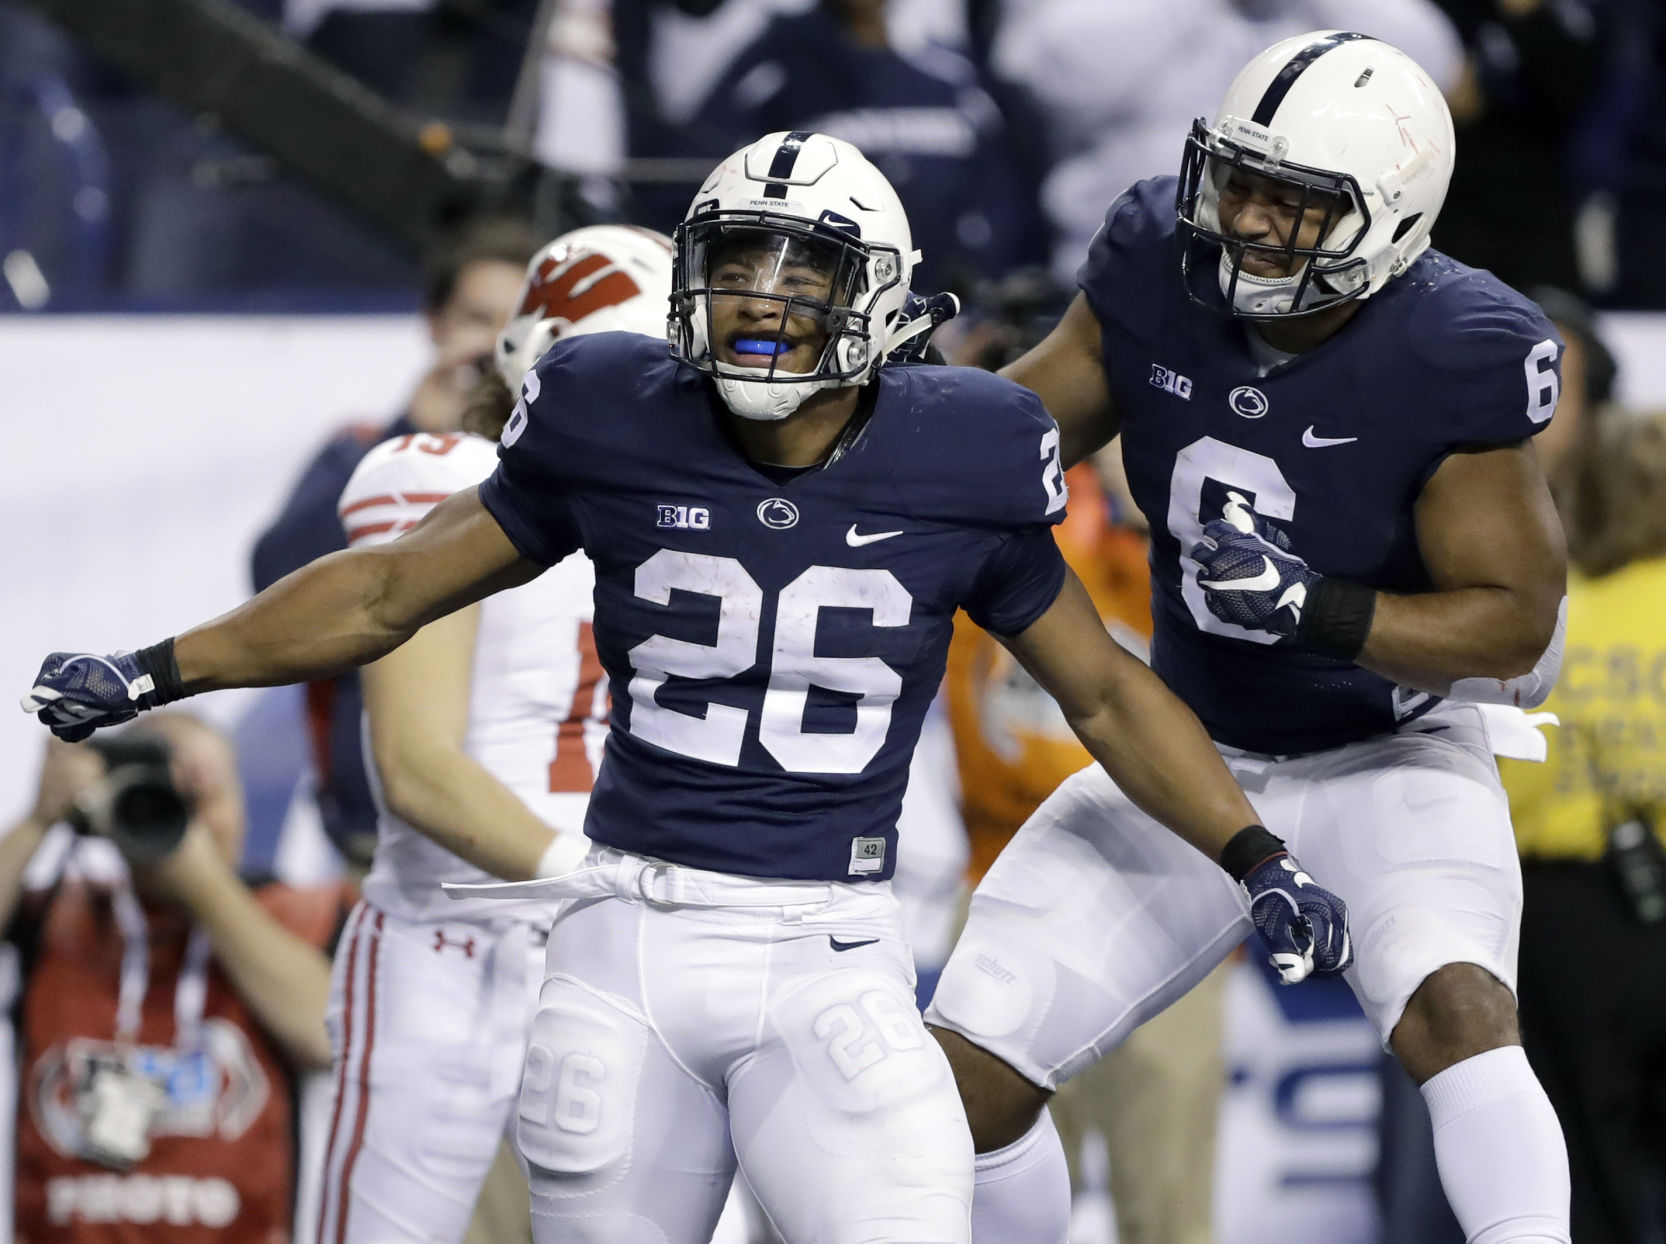 Penn State vs Akron: DeAndre Thompkins scores on 61-yard punt return